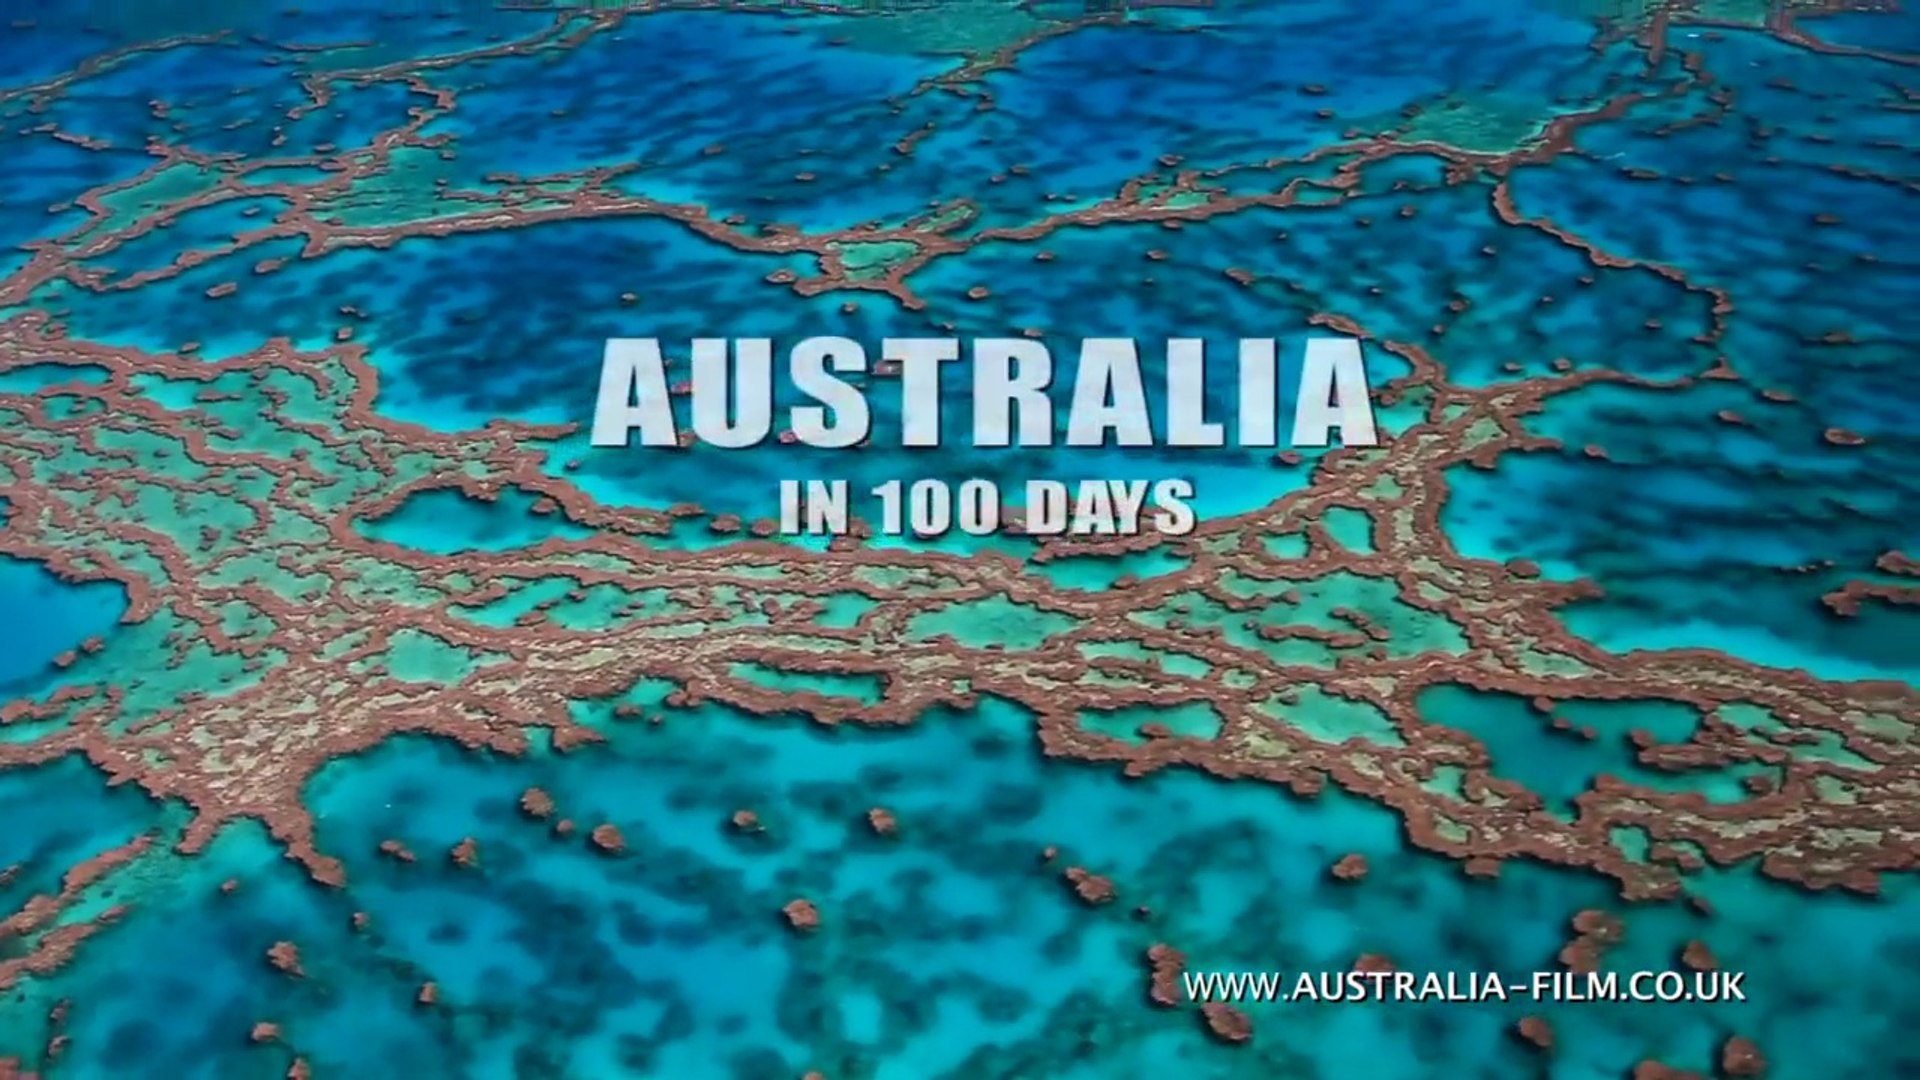 World Holiday Tour 2   Australia clip 1  Australia in 100 days - out now on DVD and Bluray - Trailer